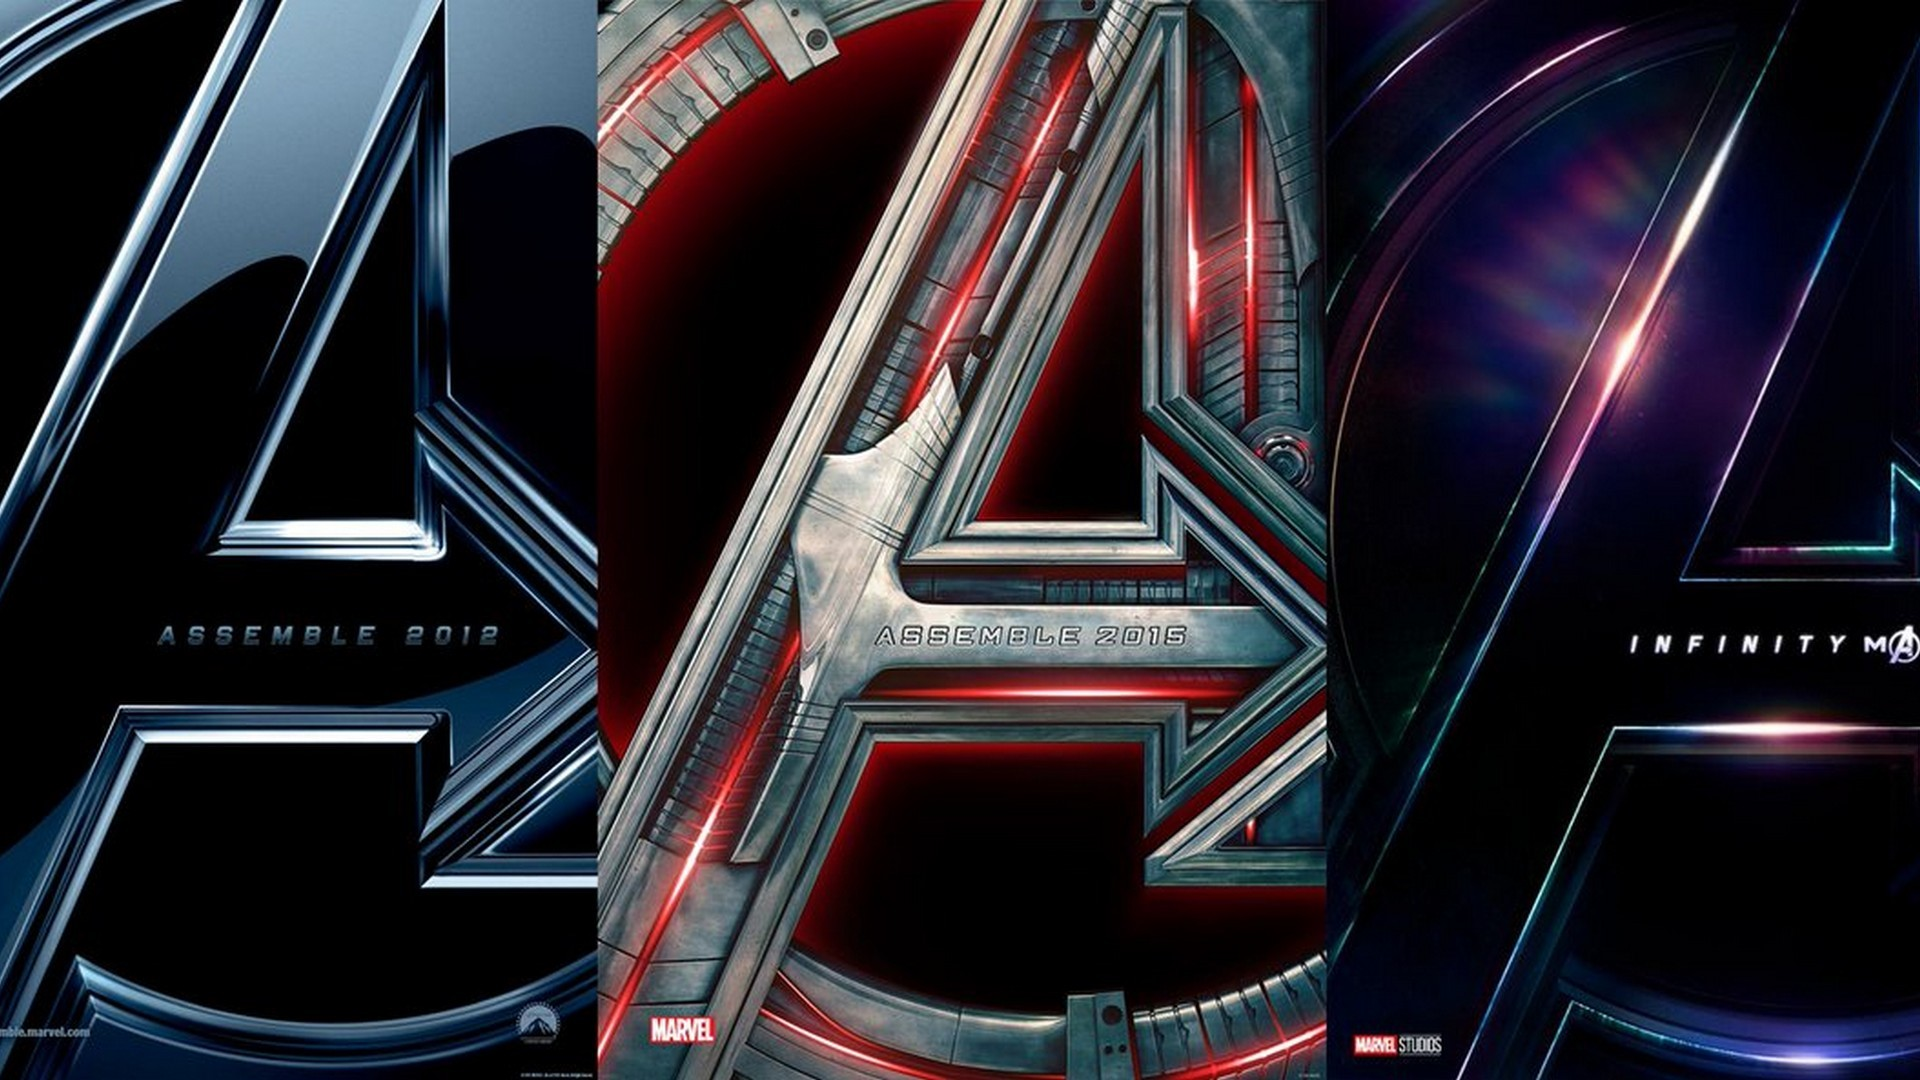 Start Download Avengers Endgame Posters 308918 Hd